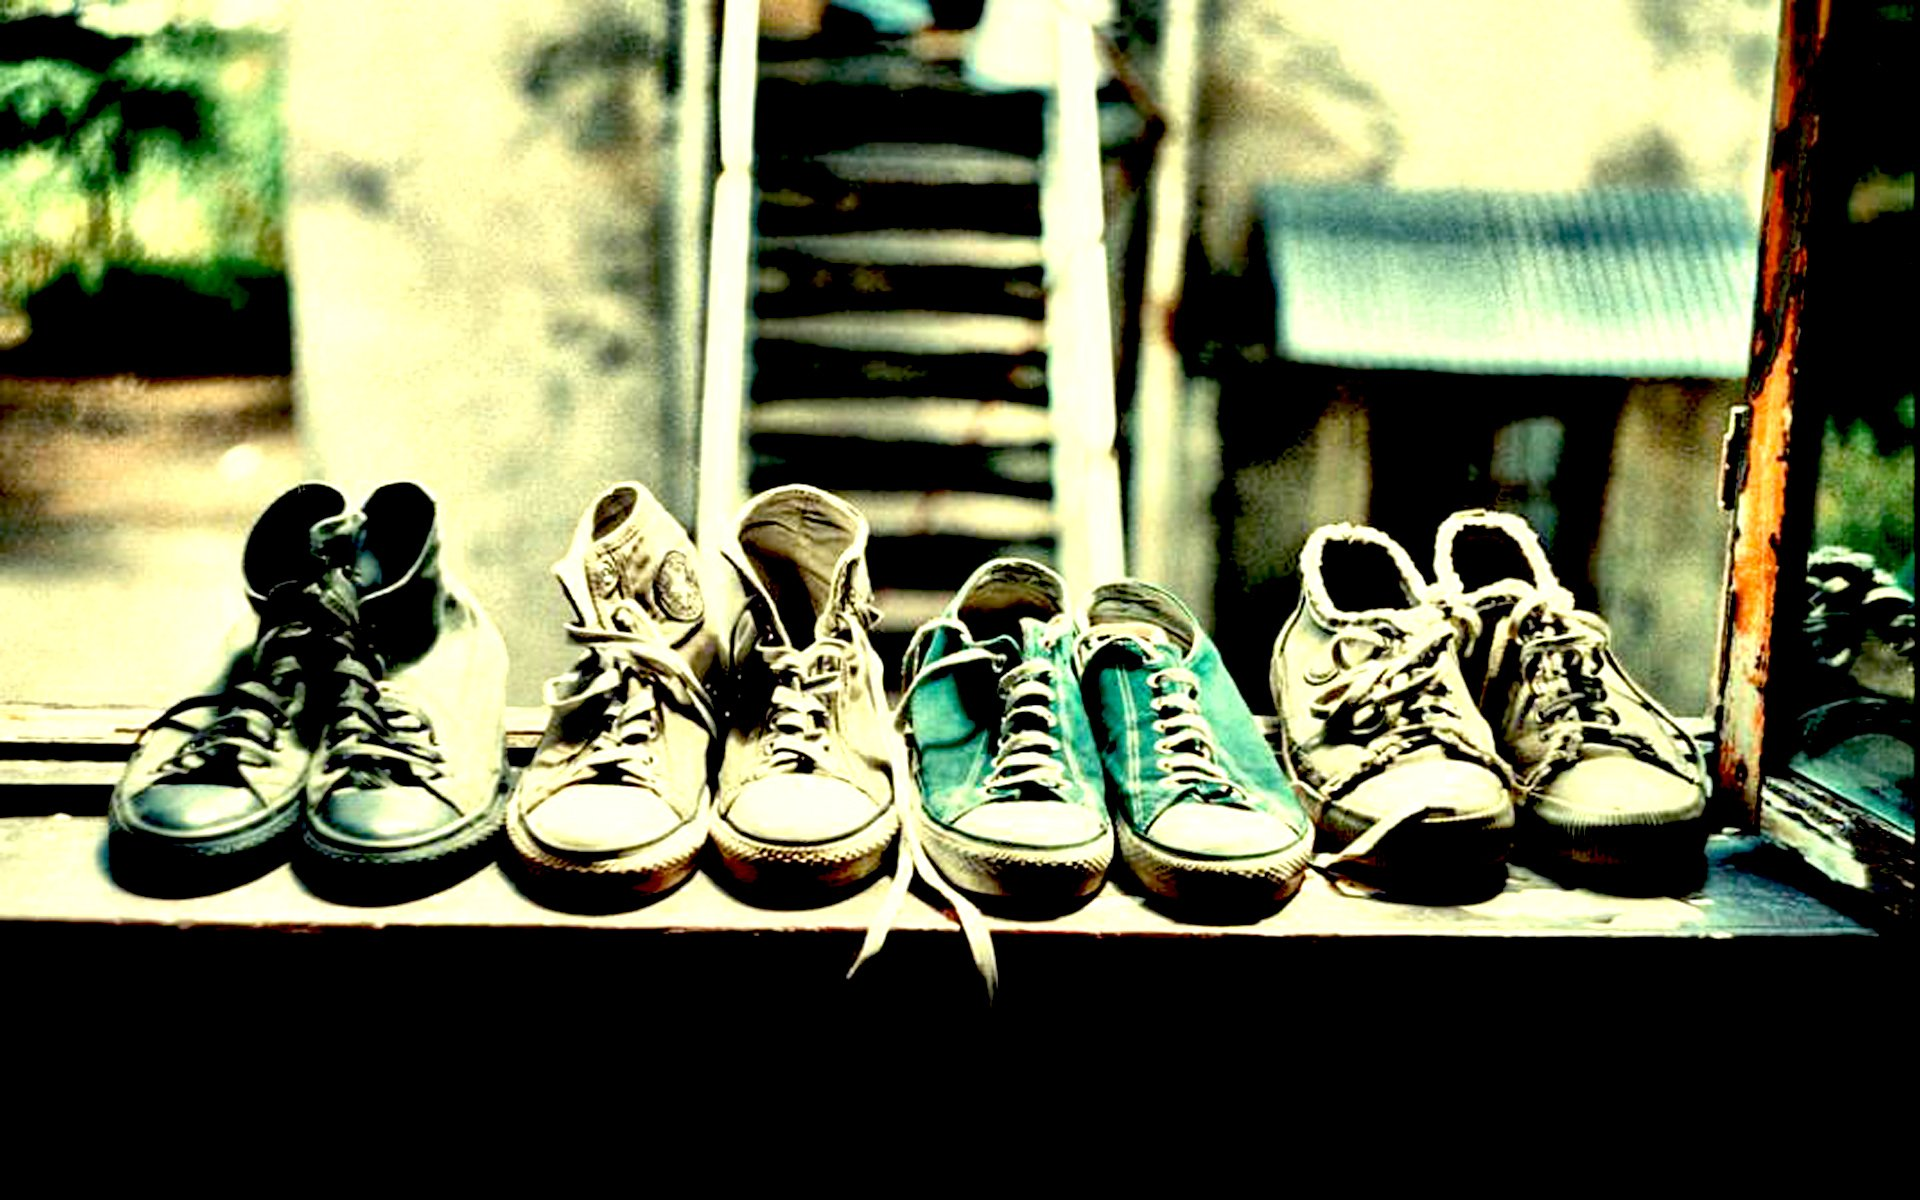 Sneakers photography shoes sneakers 1920x1200